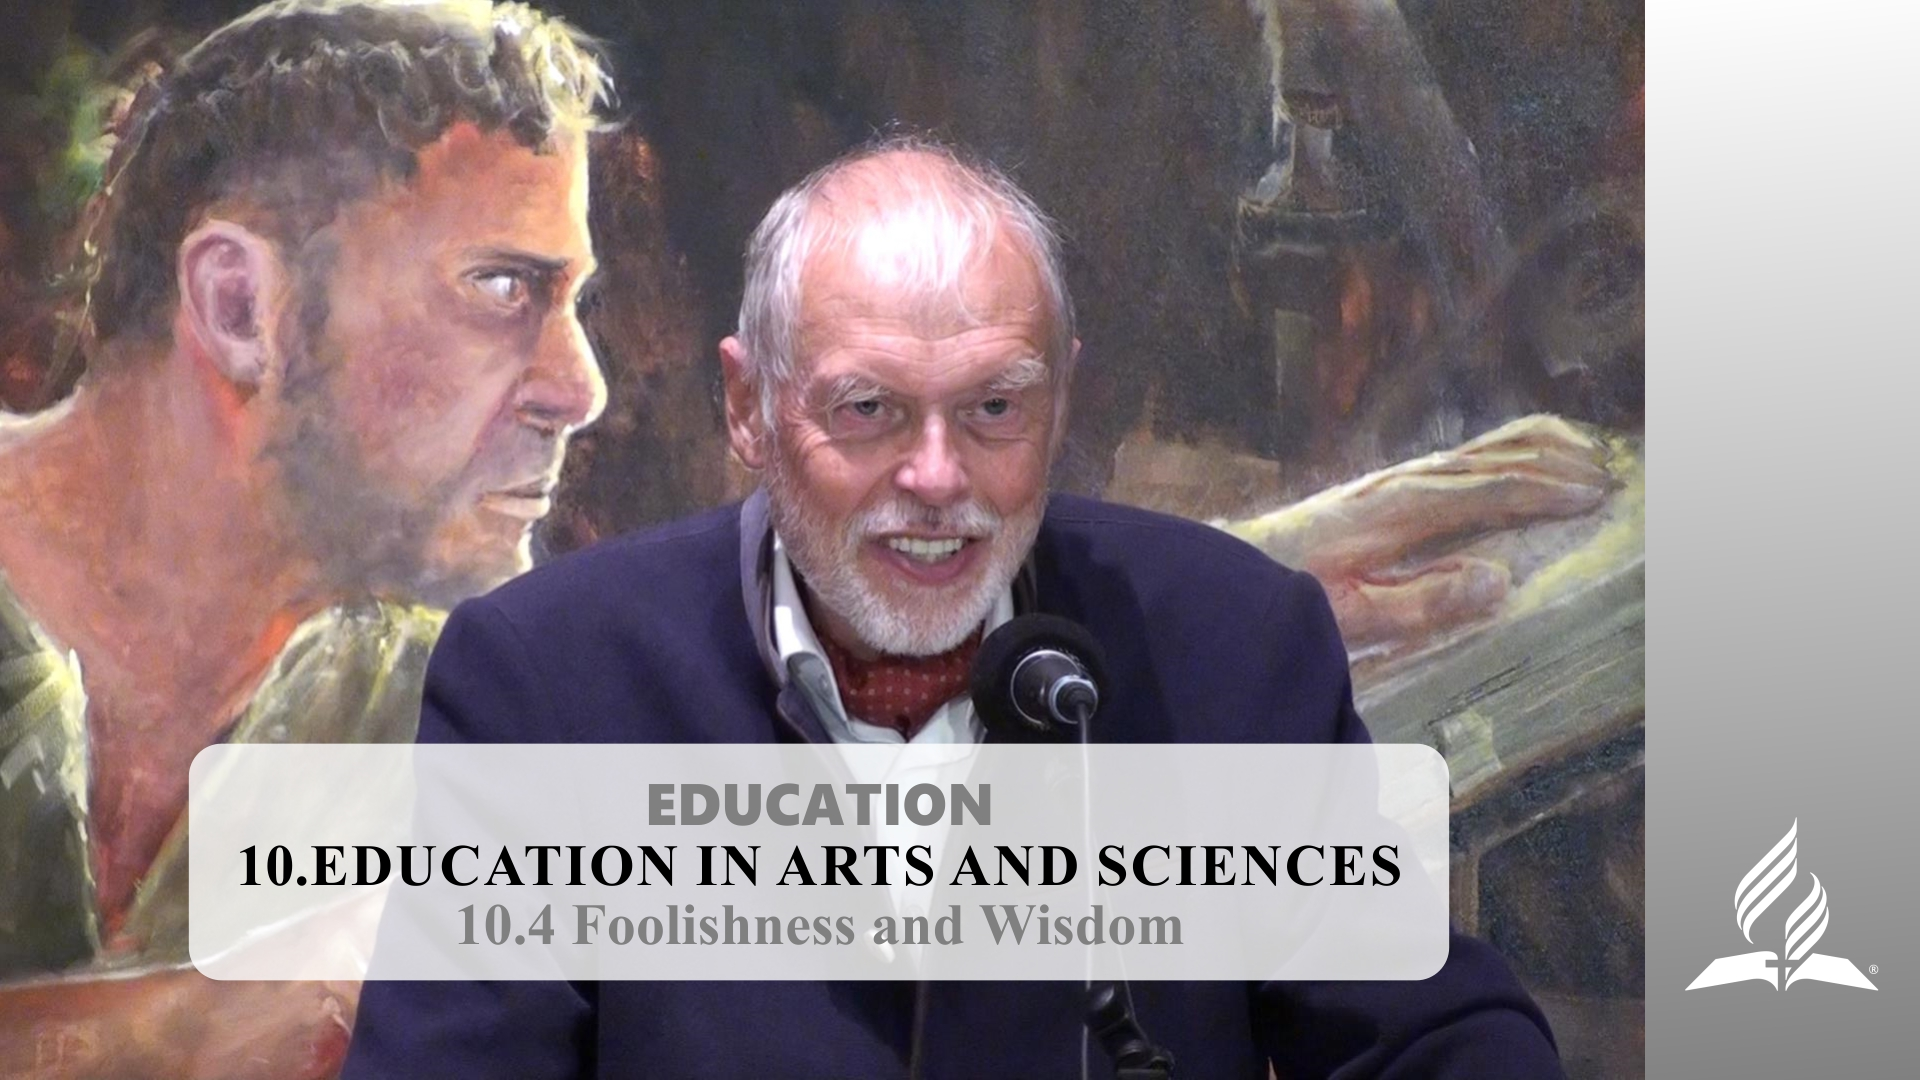 10.4 Foolishness and Wisdom – EDUCATION IN ARTS AND SCIENCES   Pastor Kurt Piesslinger, M.A.